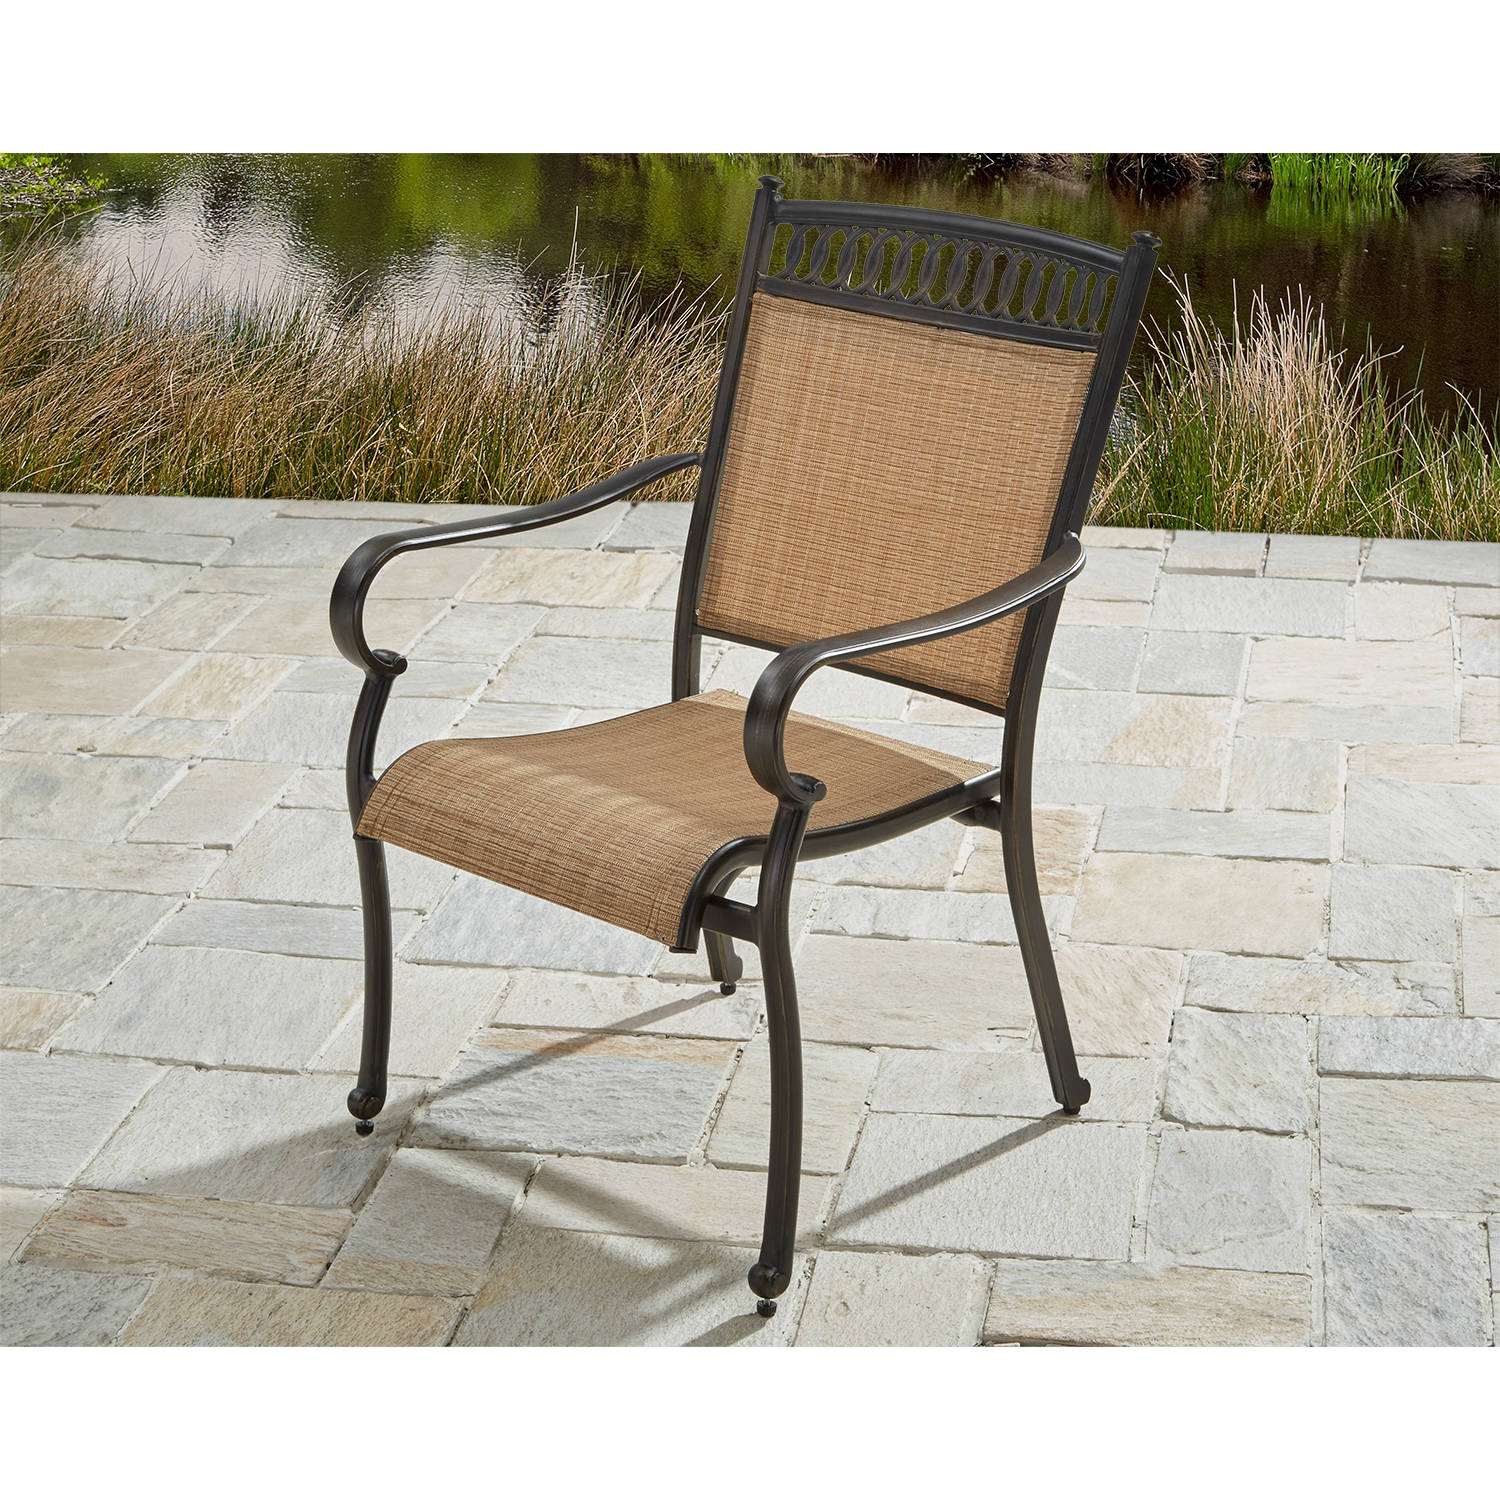 Better Homes and Gardens Warren Outdoor Dining Chairs- 4 Stationary and 2 Rocker